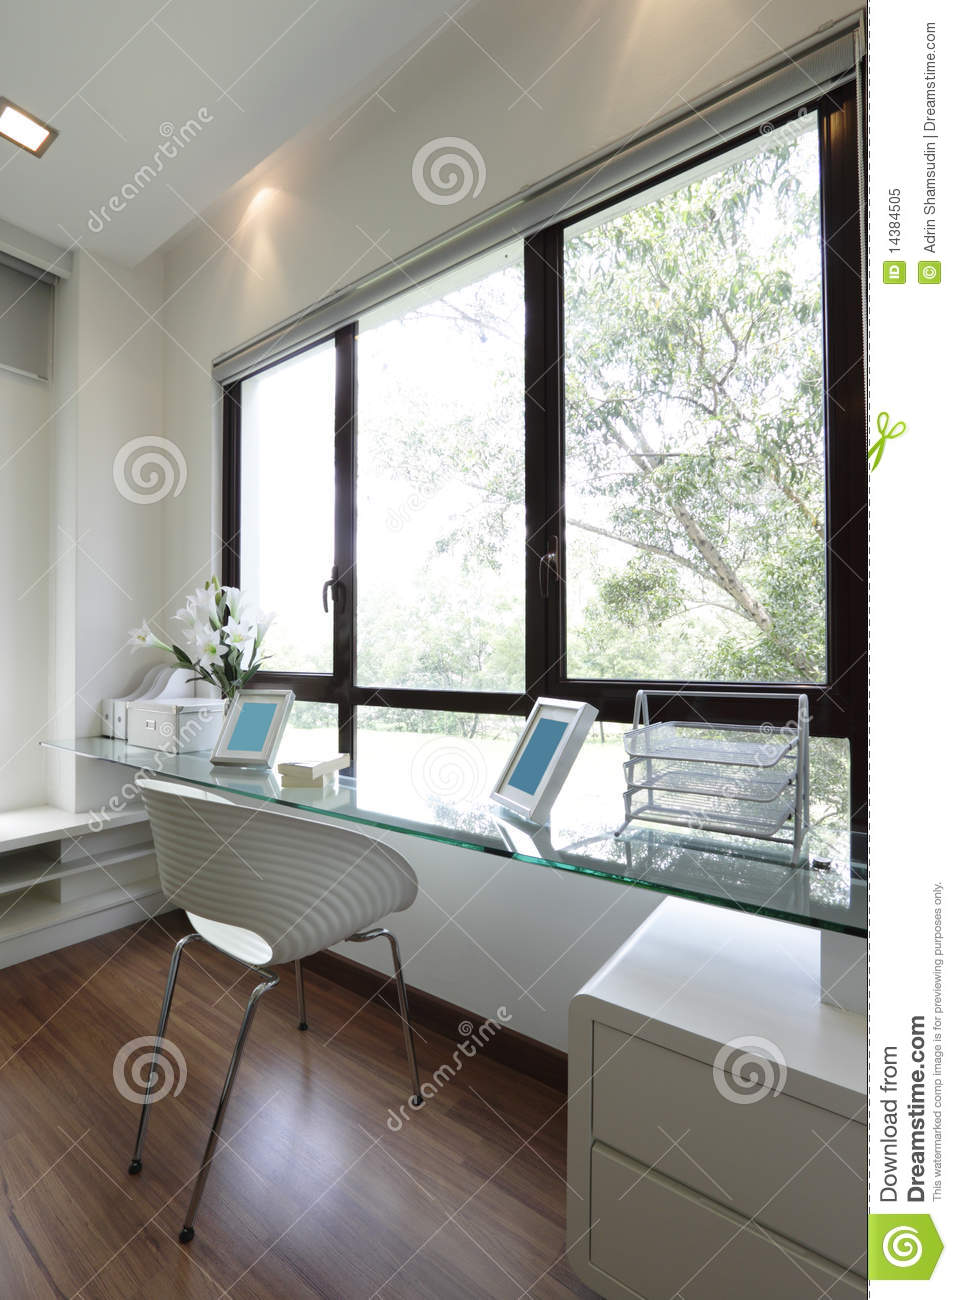 Study table royalty free stock photo image 14384505 Study table facing window